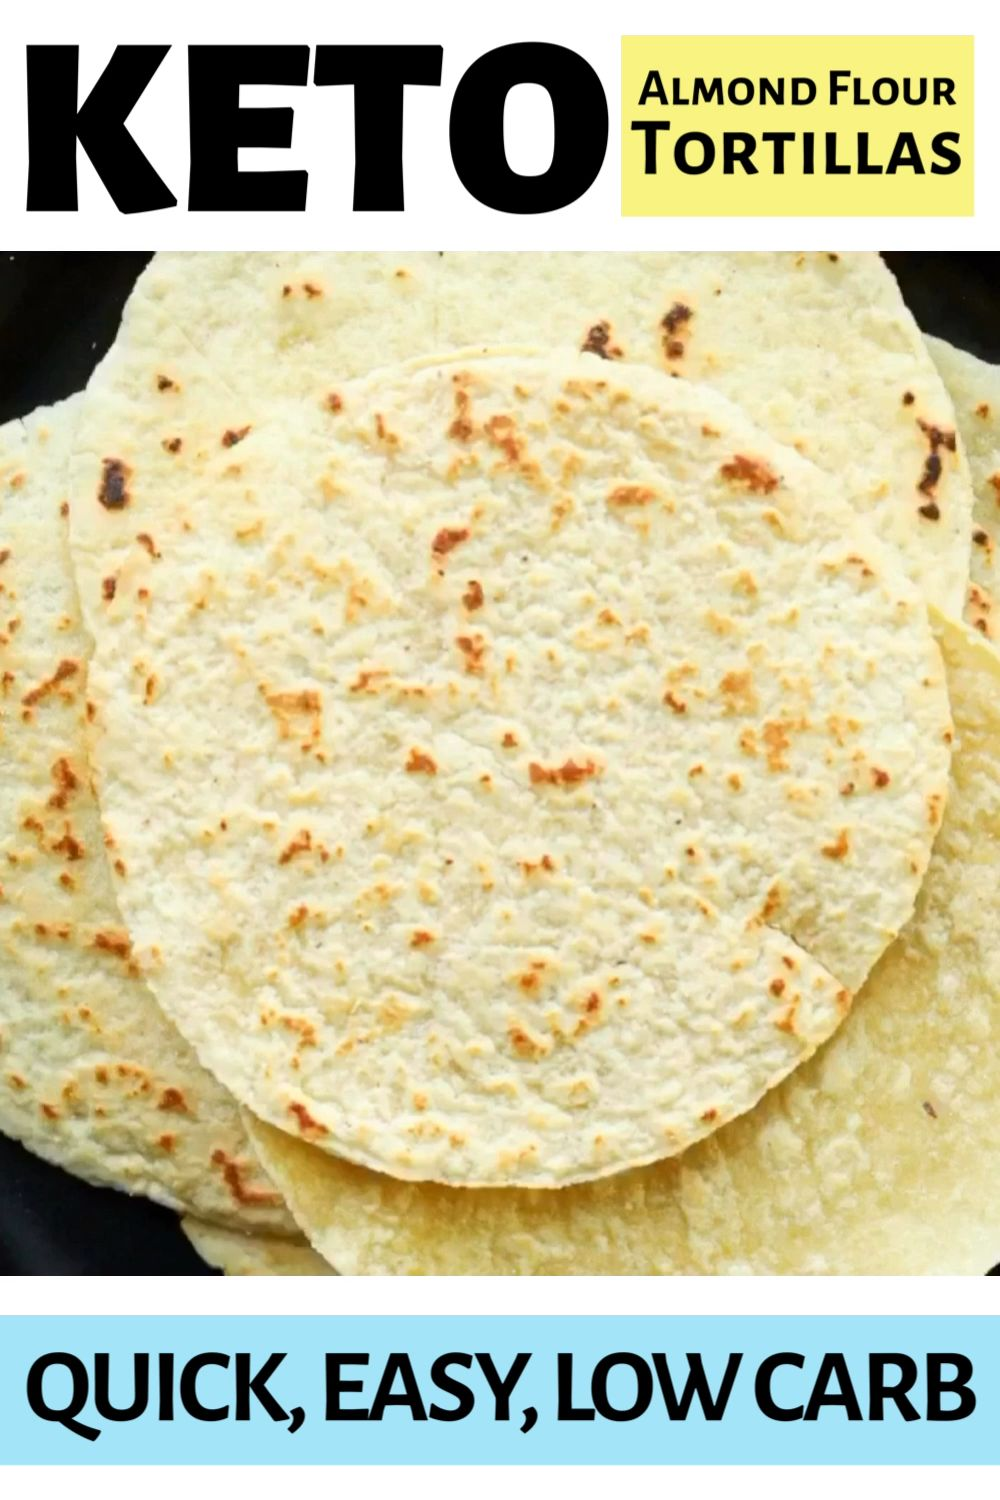 KETO TORTILLA RECIPE 🌮 These keto tortillas are ma